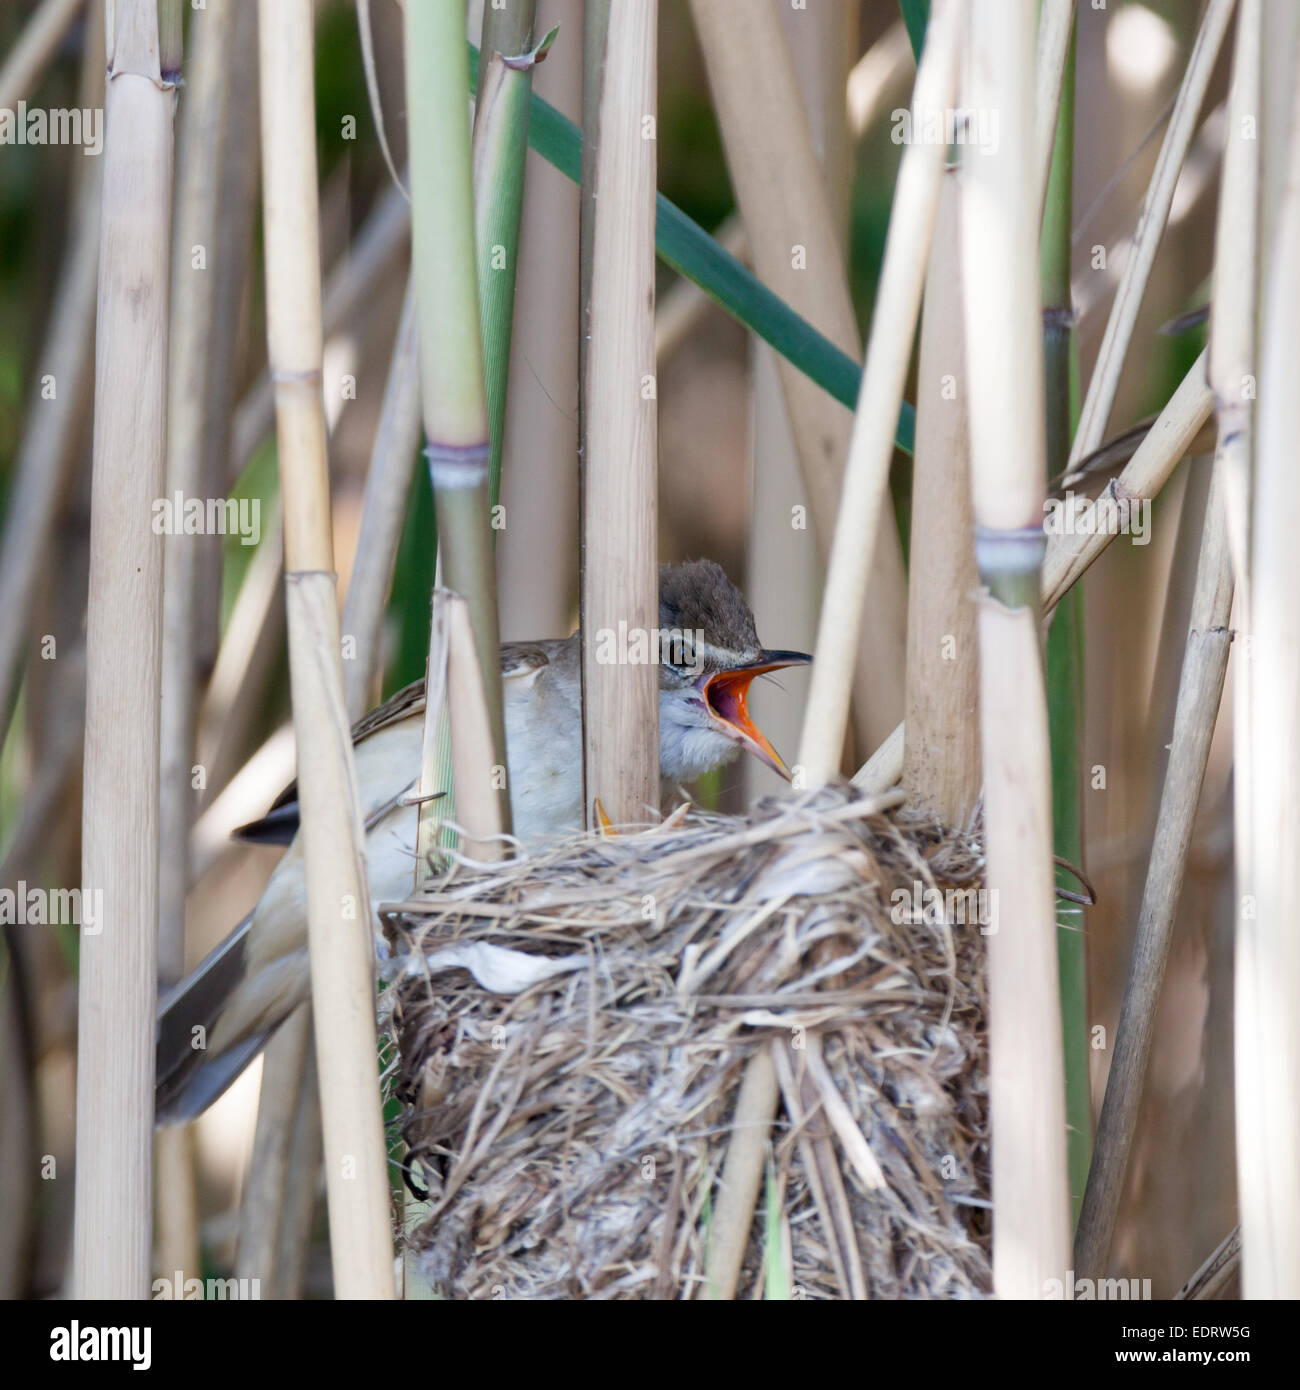 Nest of the Great Reed Warbler (Acrocephalus arundinaceus) in the nature. Stock Photo